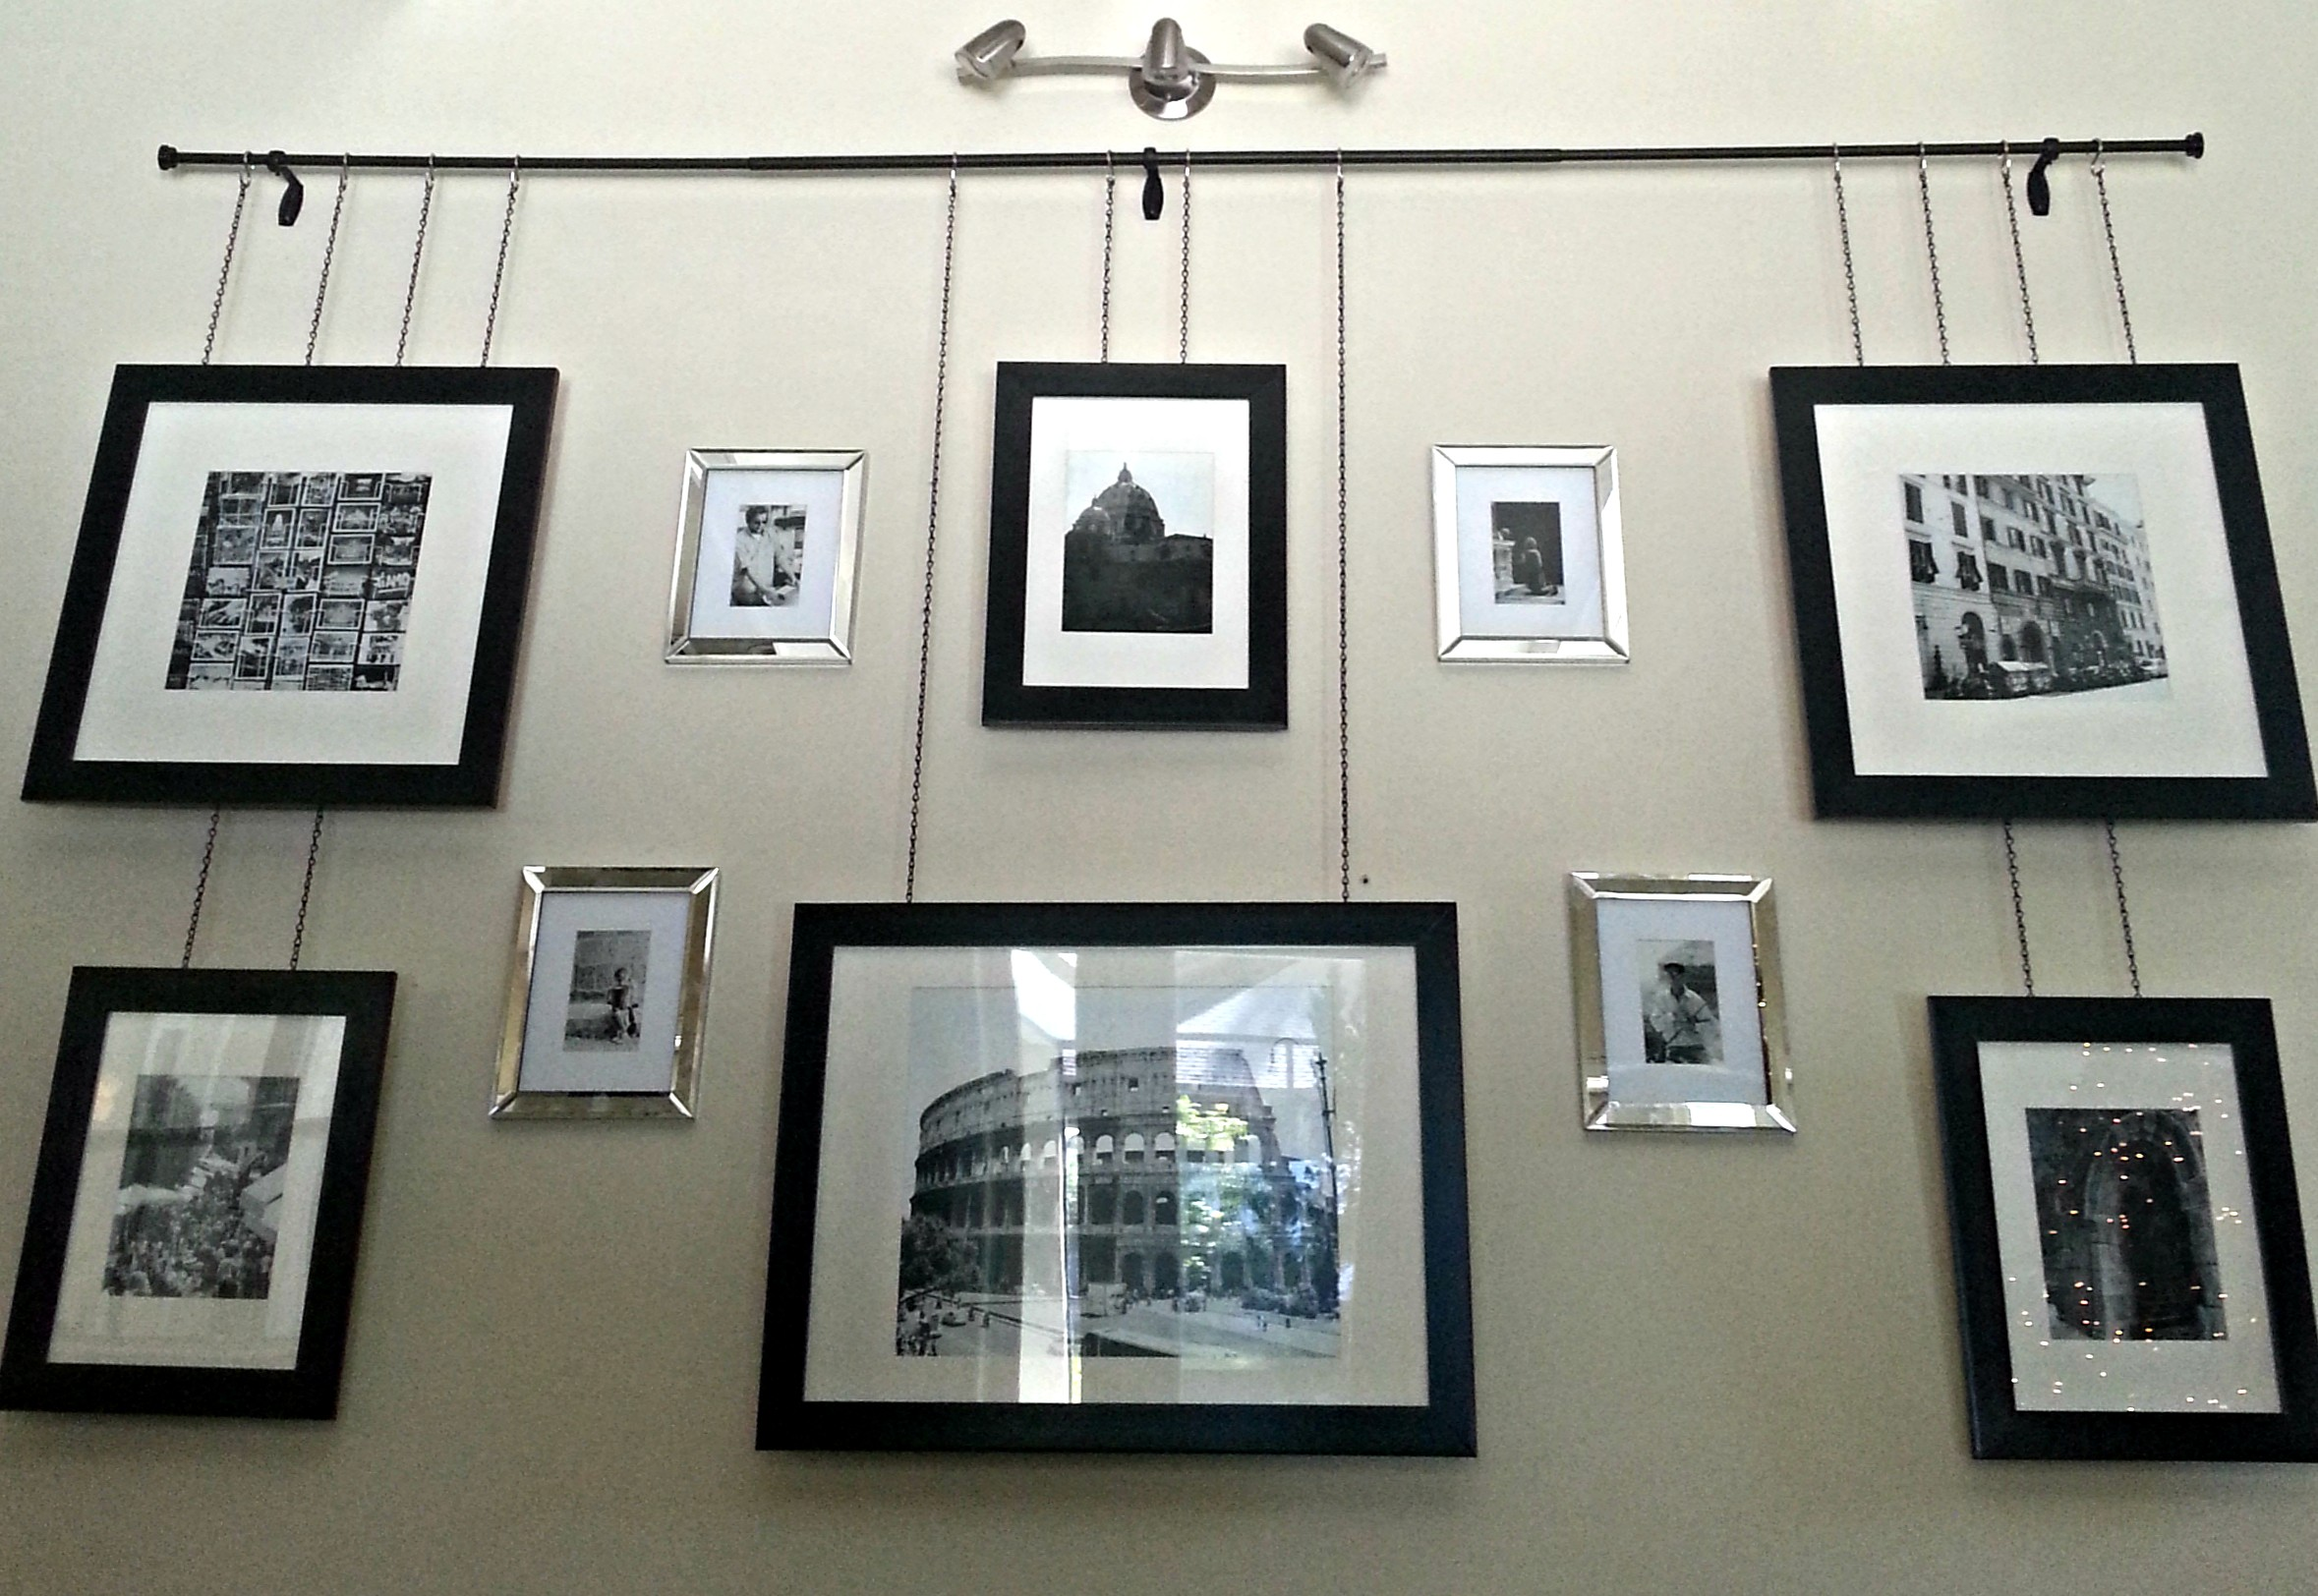 Gallery frames hanging by chain from a curtain rod with contrasting